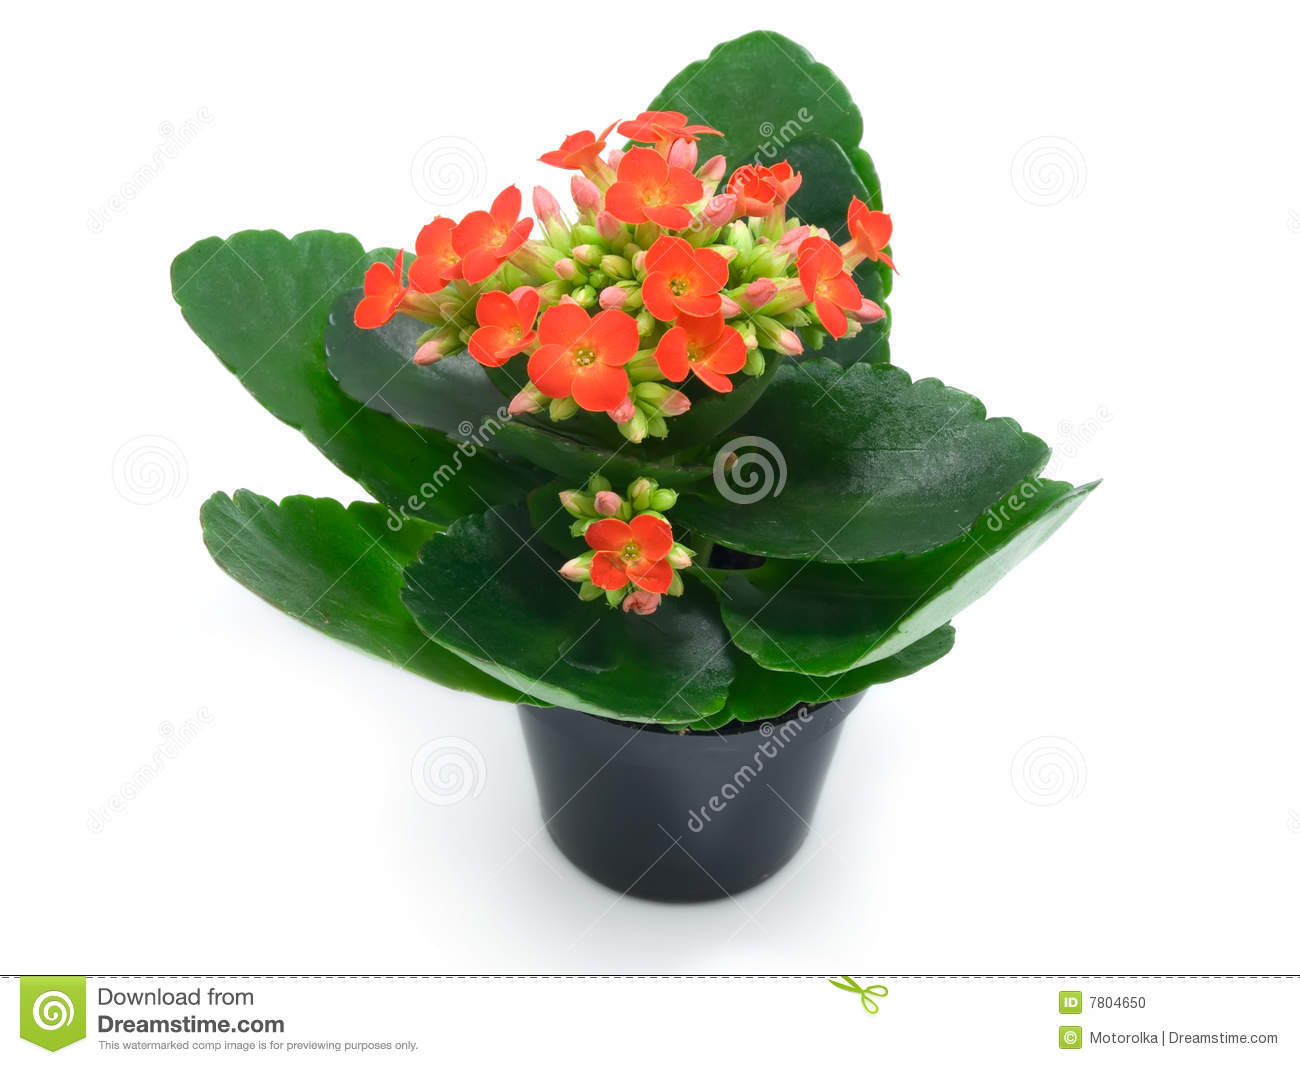 Green Houseplants With Red Flowers